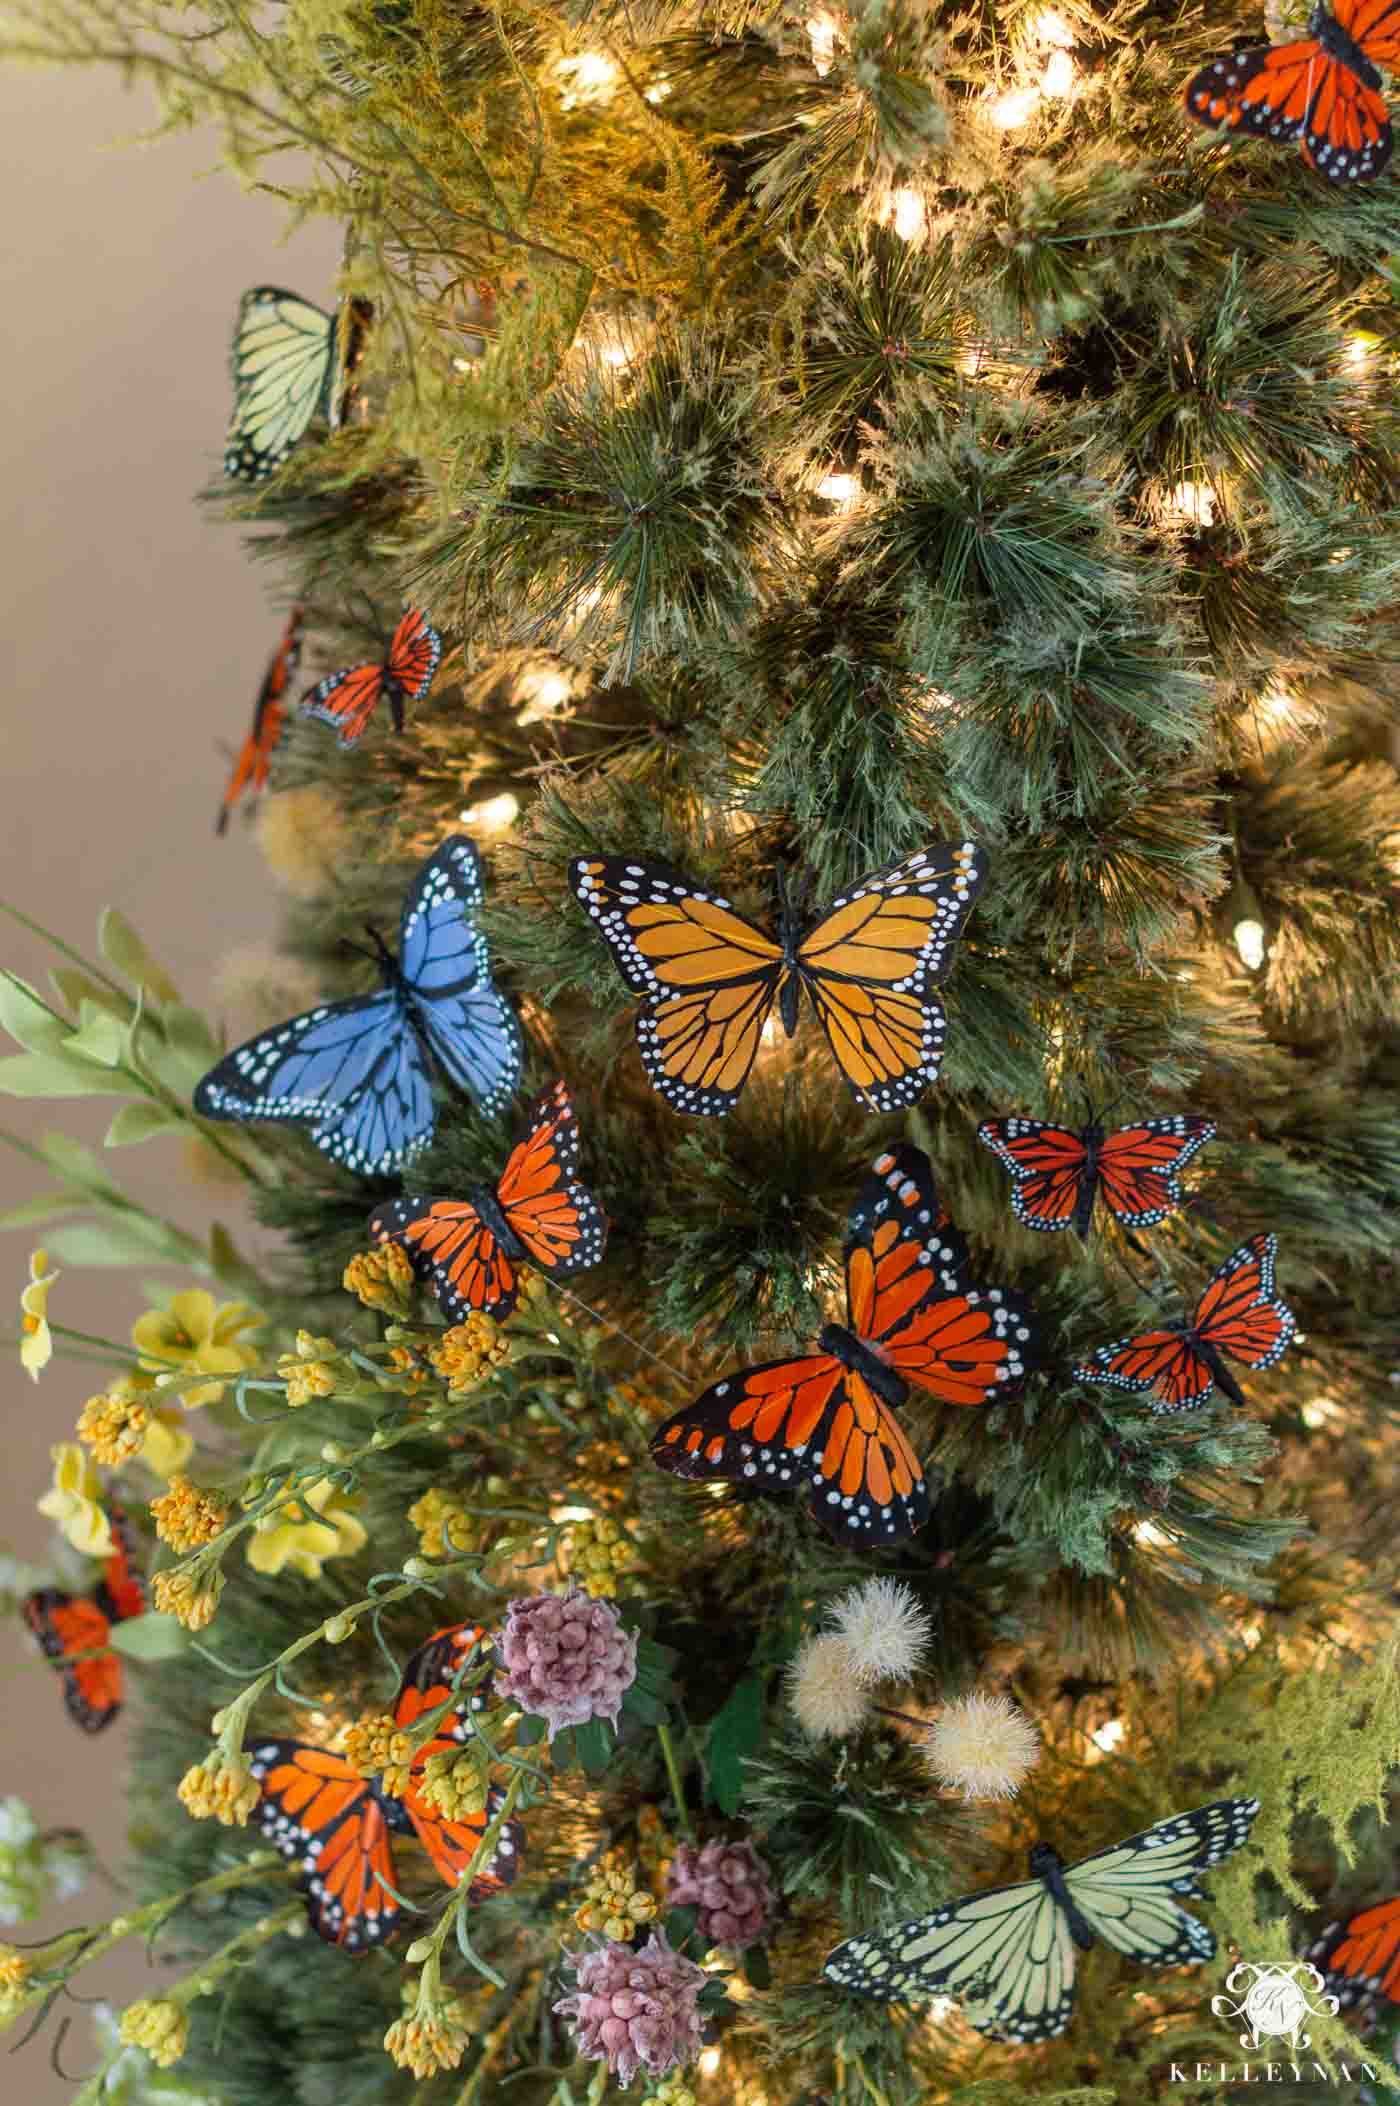 Unique Christmas Decor Theme with Butterflies